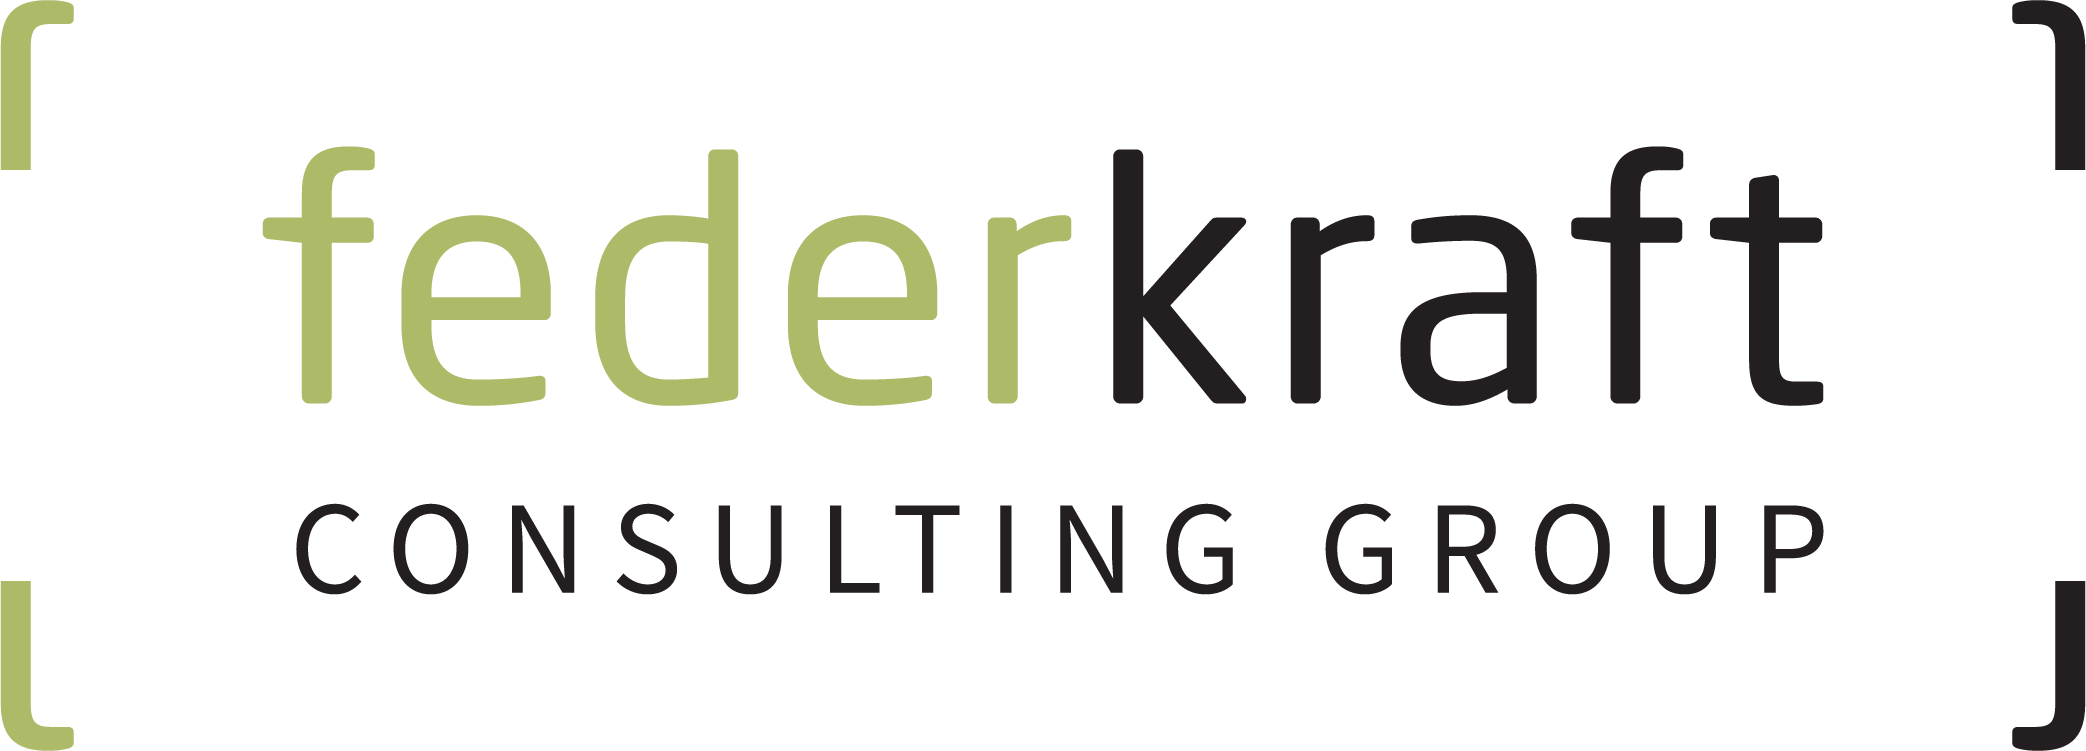 Logo federkraft CONSULTING GROUP